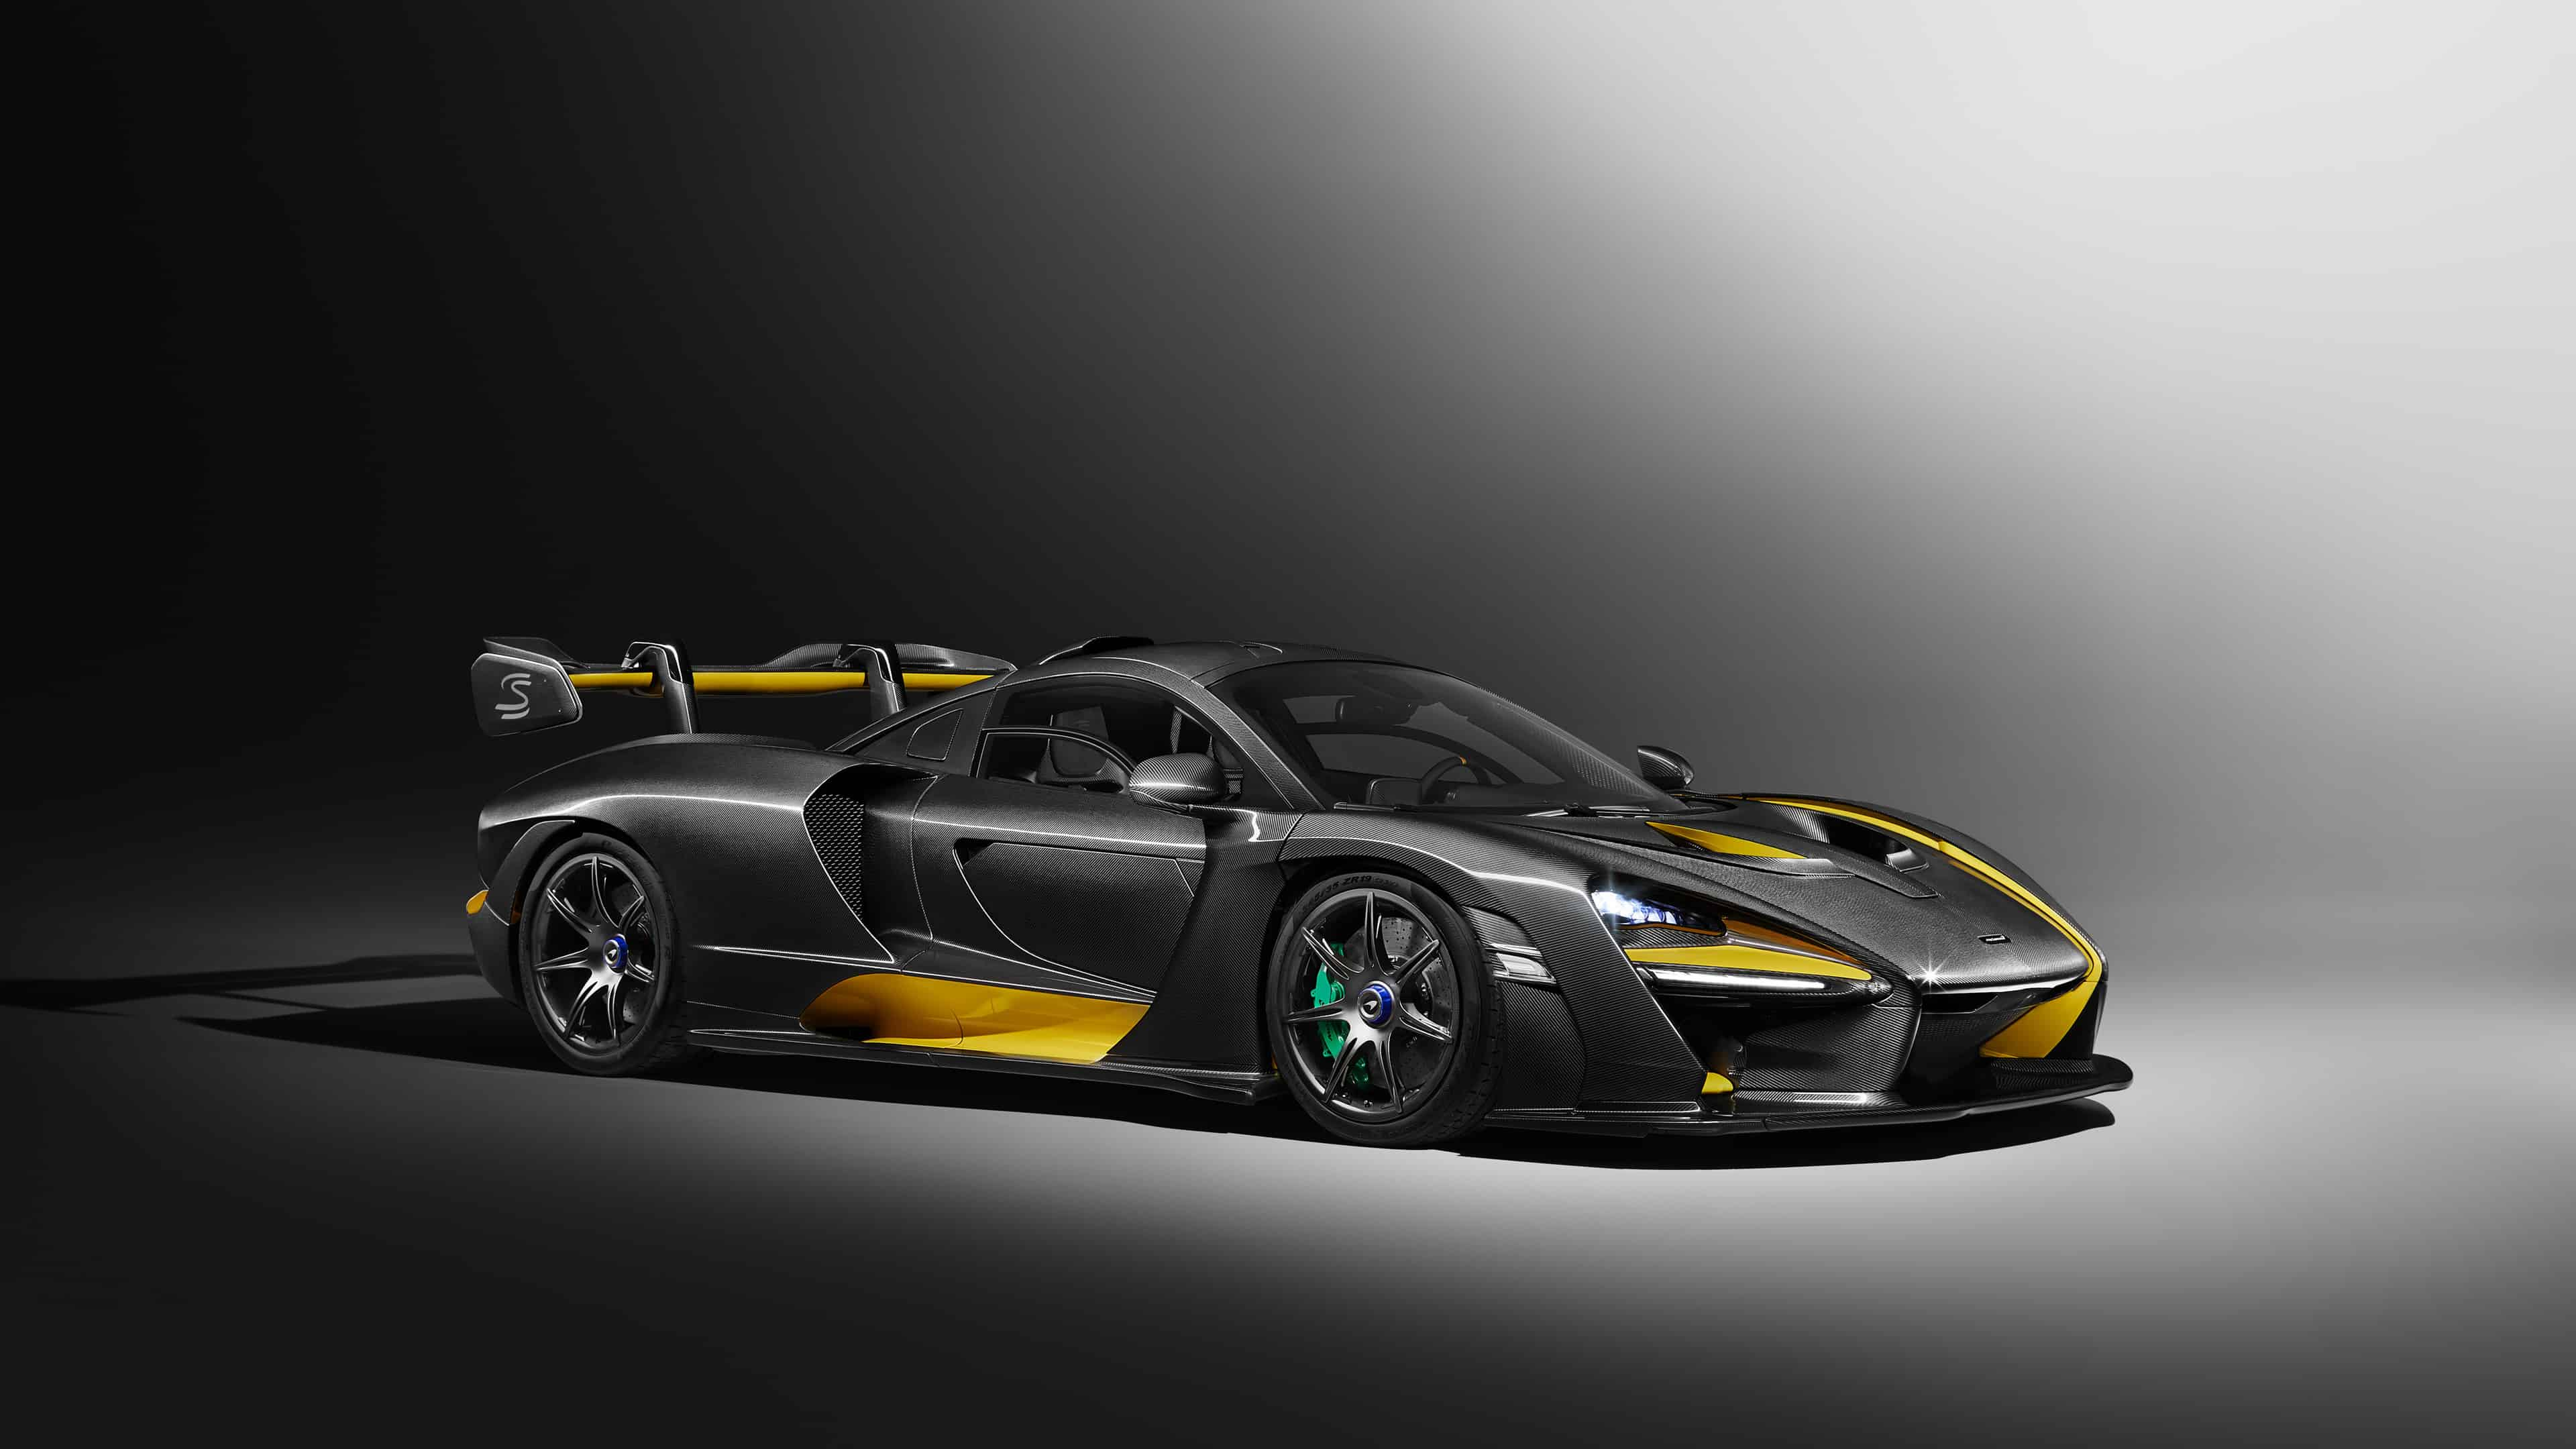 mclaren mso senna carbon theme uhd 4k wallpaper